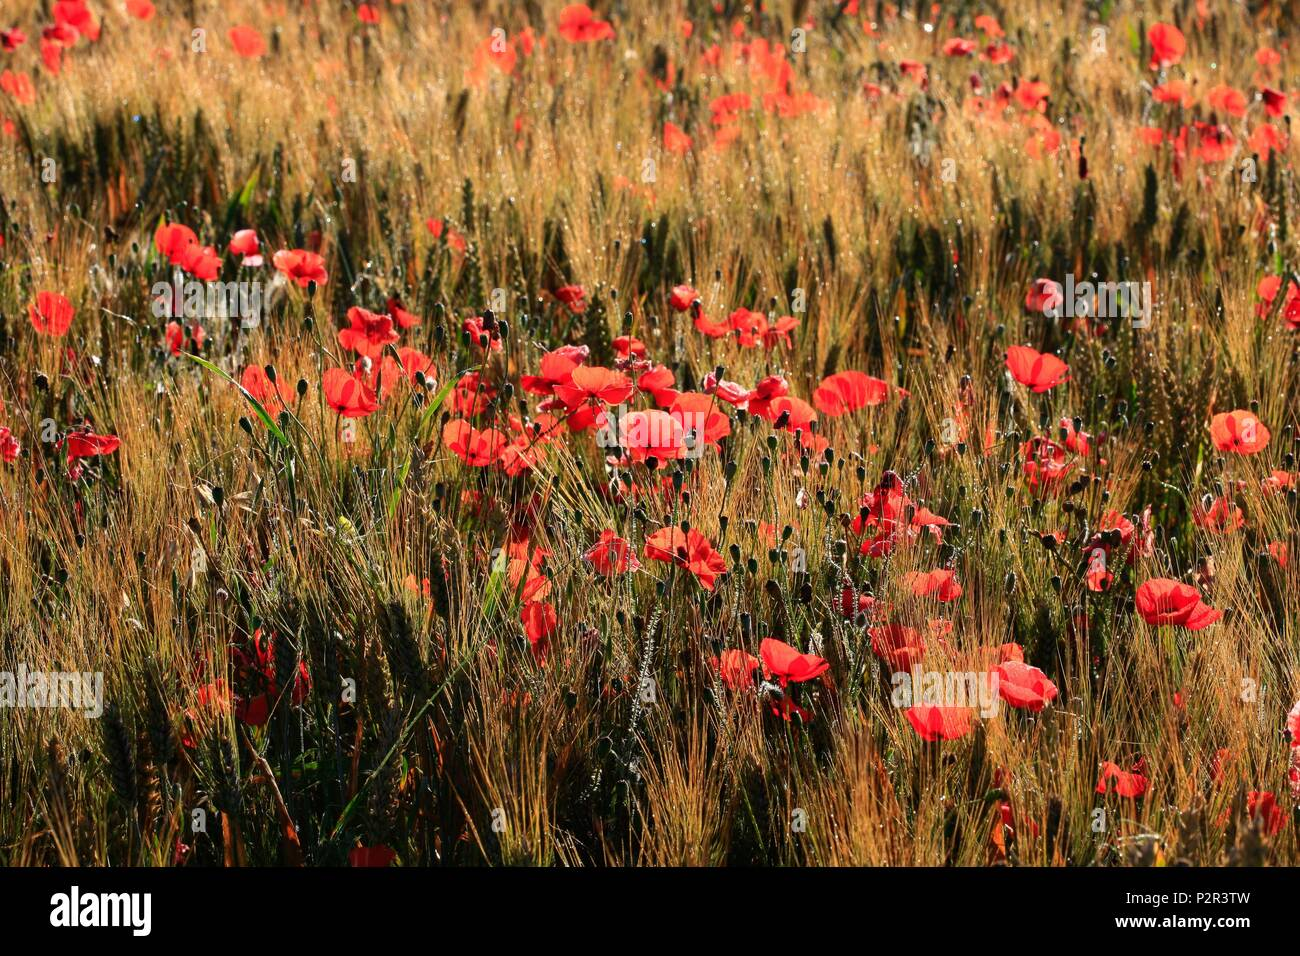 France, Bouches du Rhone, Puyricard, field of poppies, also called Ponceau, poppy poppy or red poppy, is a dicotyledonous plant of the family Papaveraceae and poppy genus - Stock Image